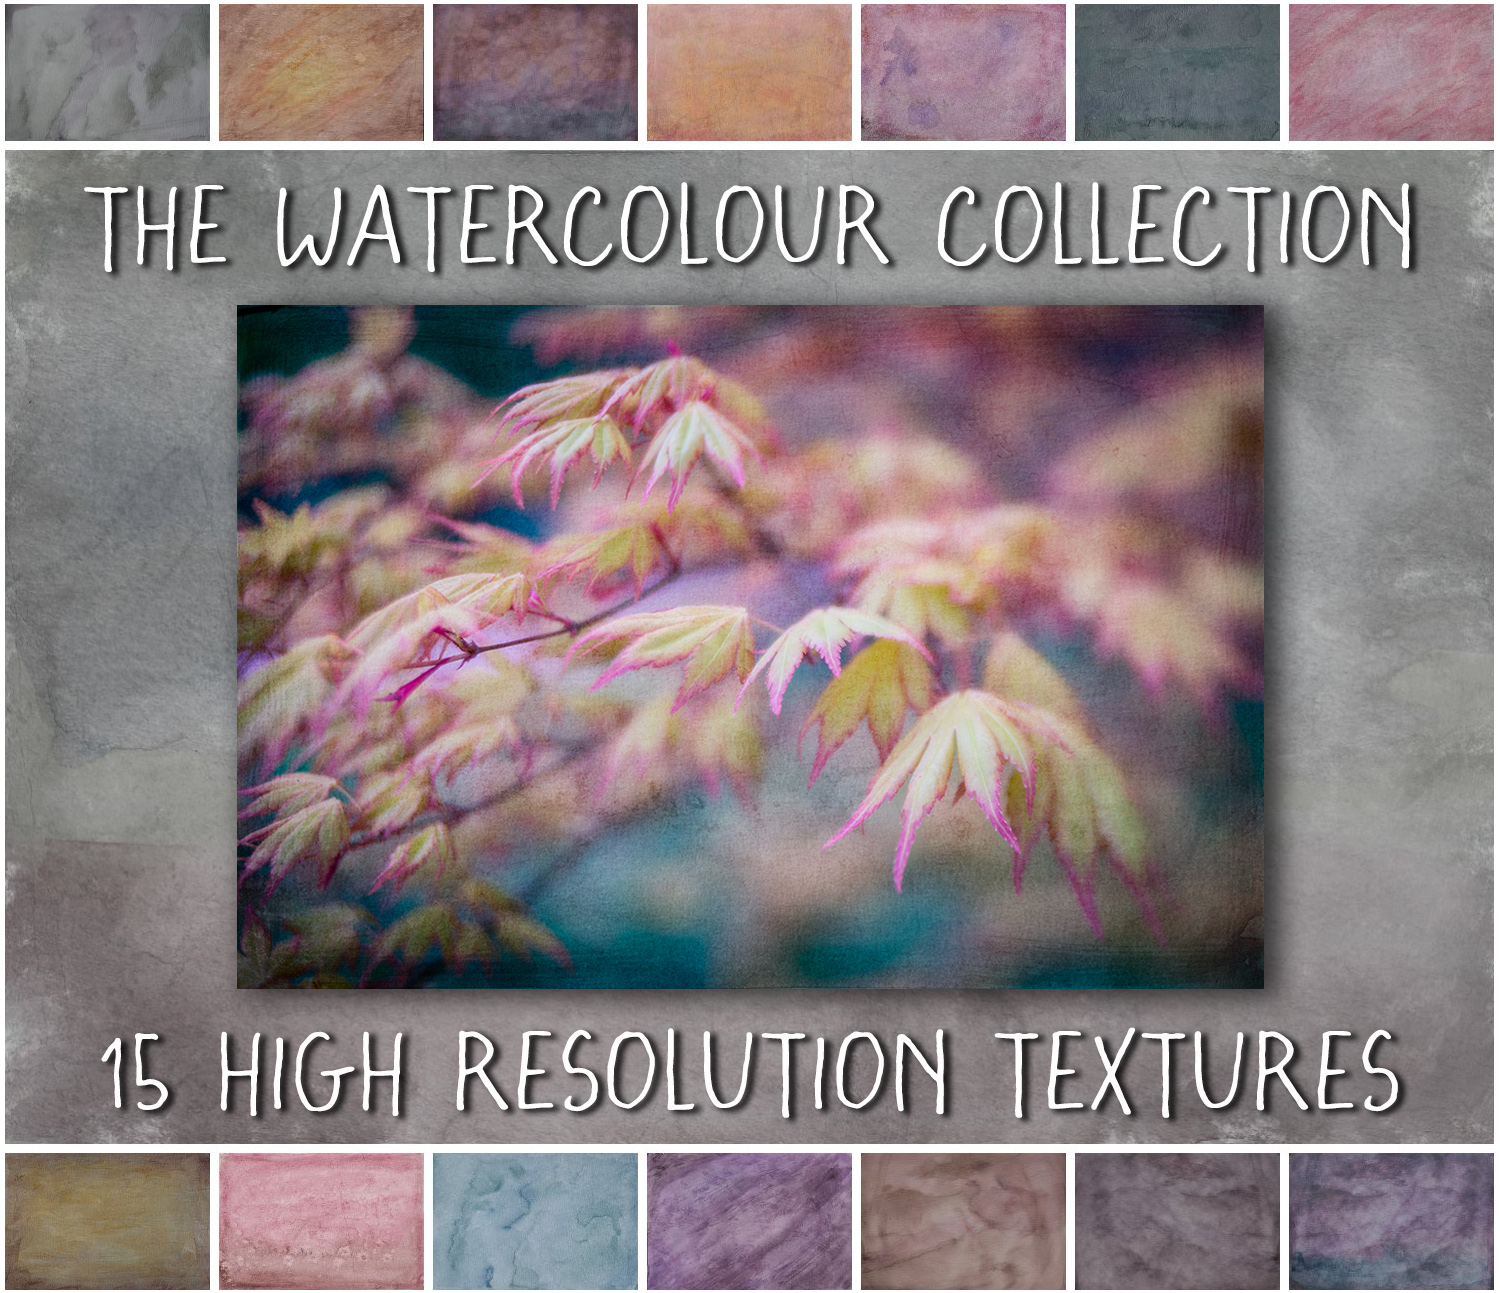 Photoshop textures and overlays by Janet Broughton